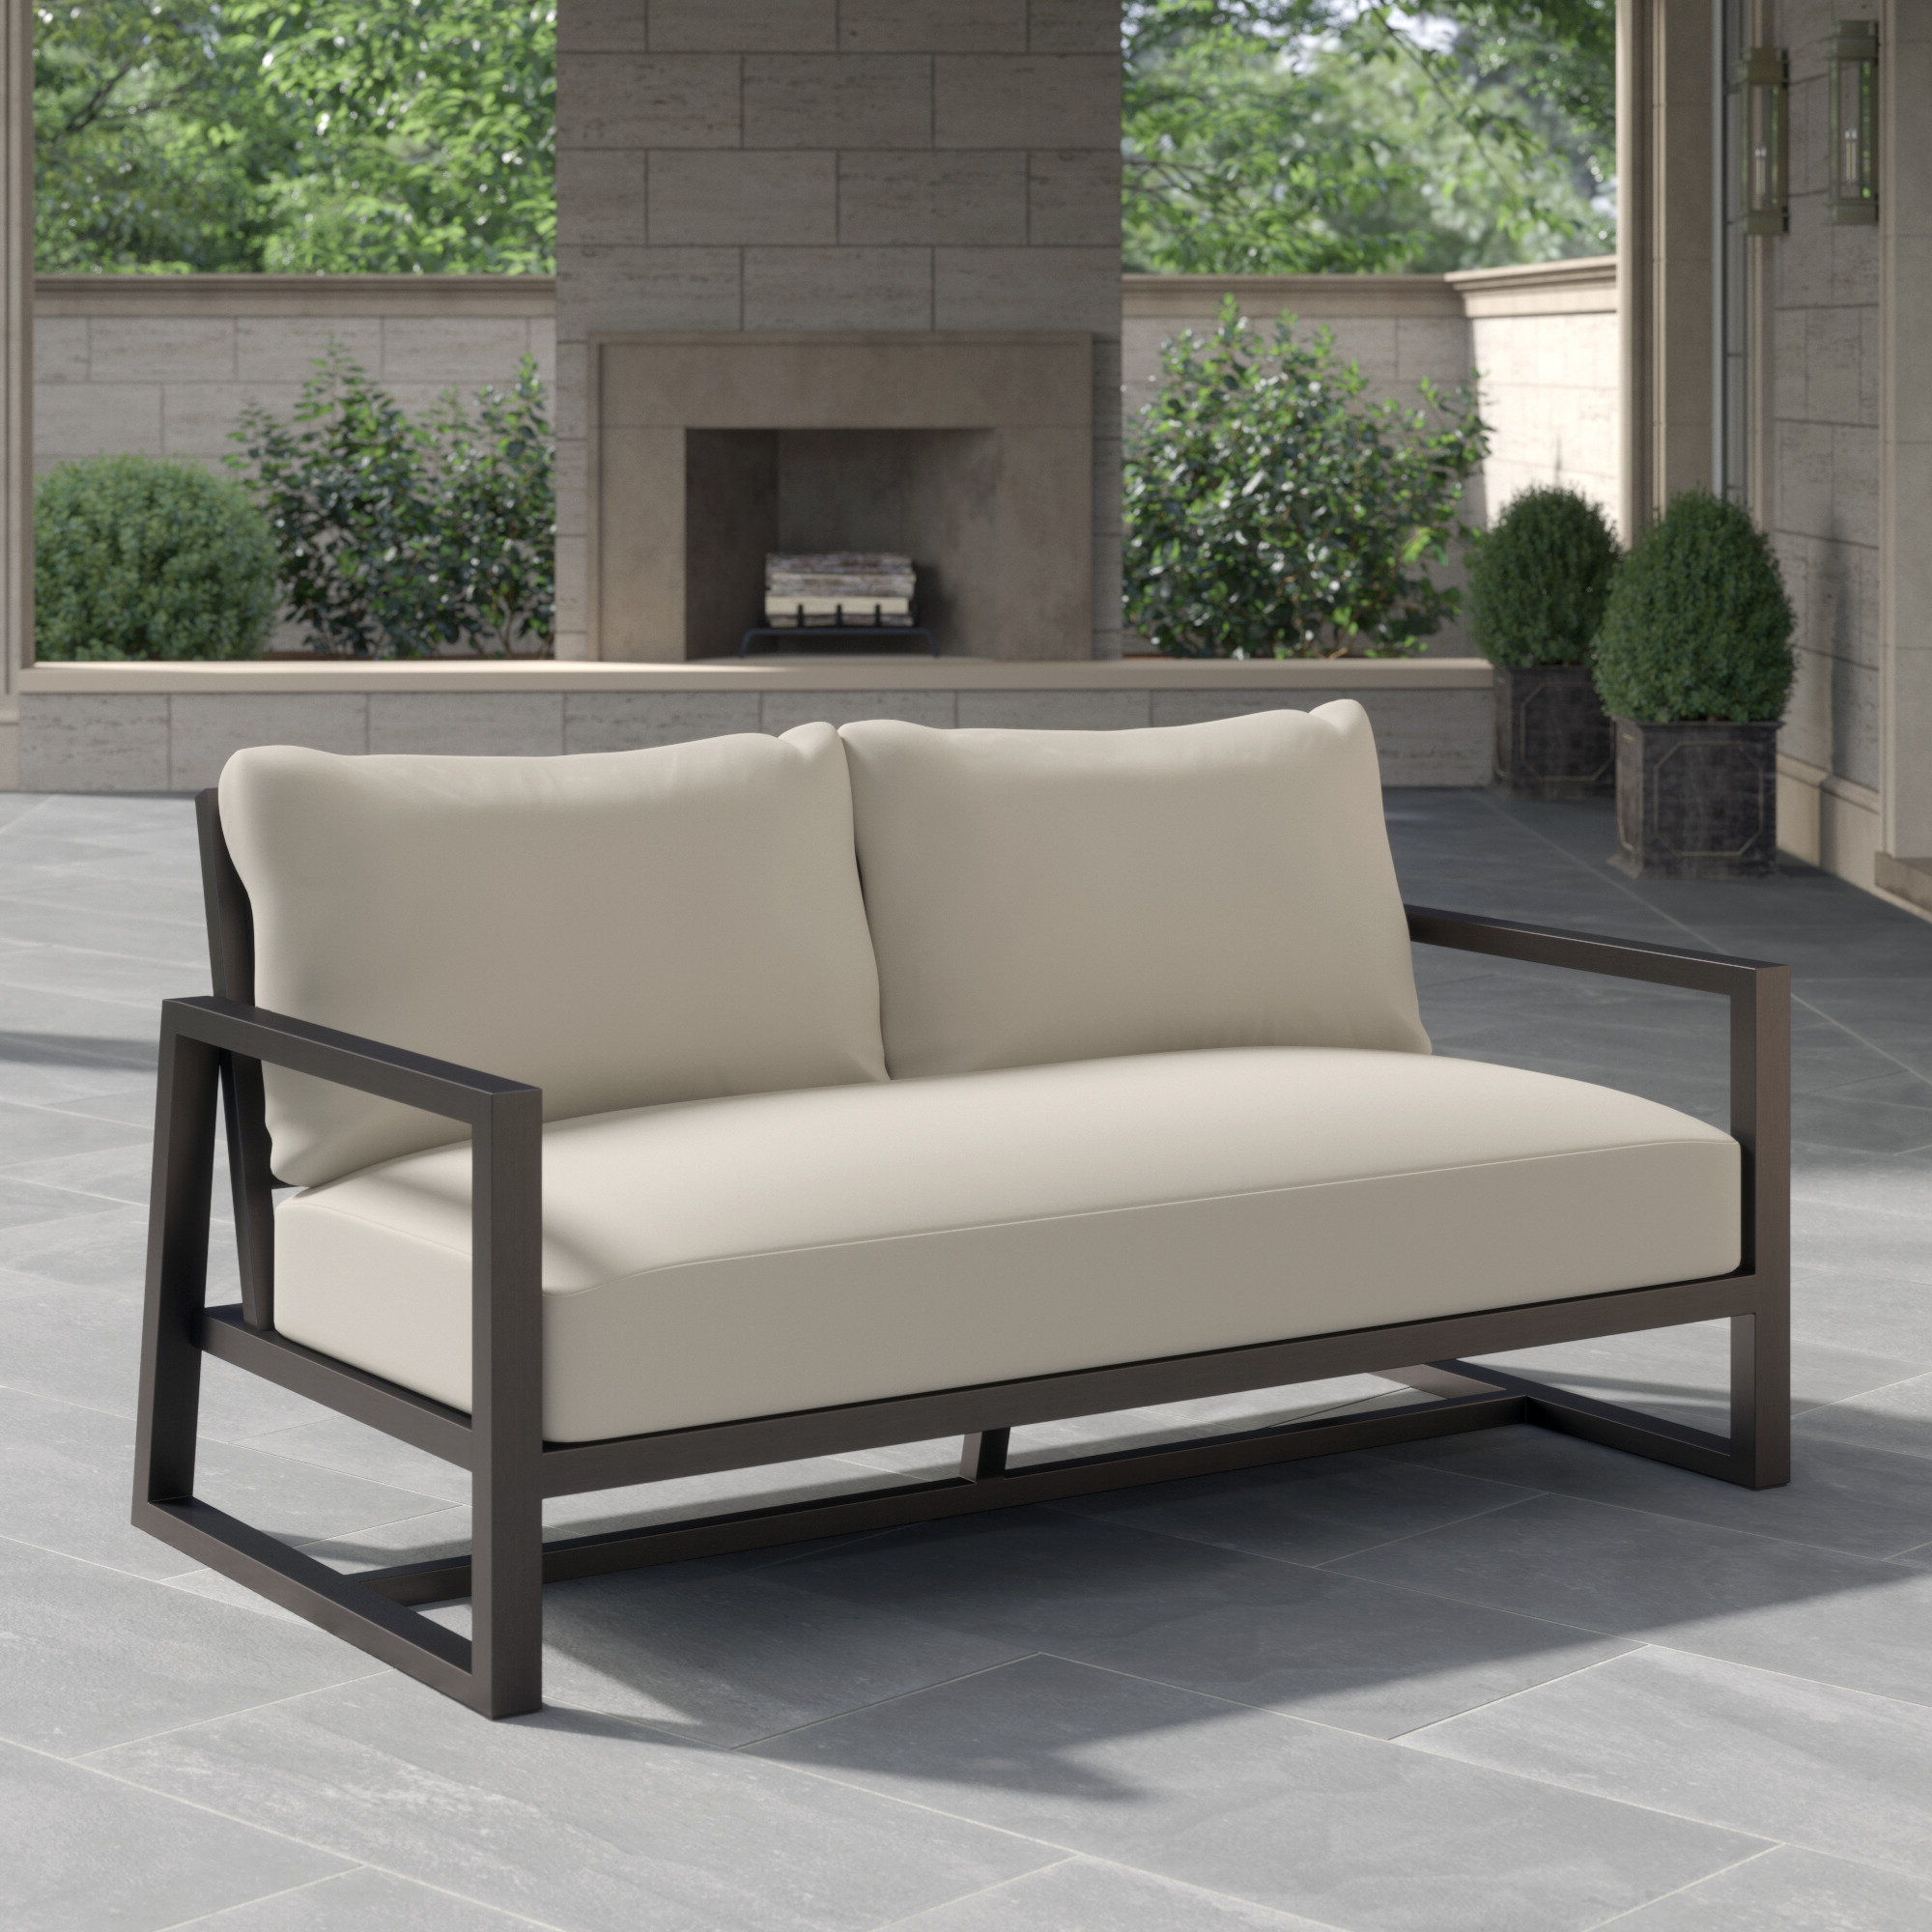 Current Lyall Loveseats With Cushion Regarding Avondale Loveseat With Cushions (View 3 of 20)